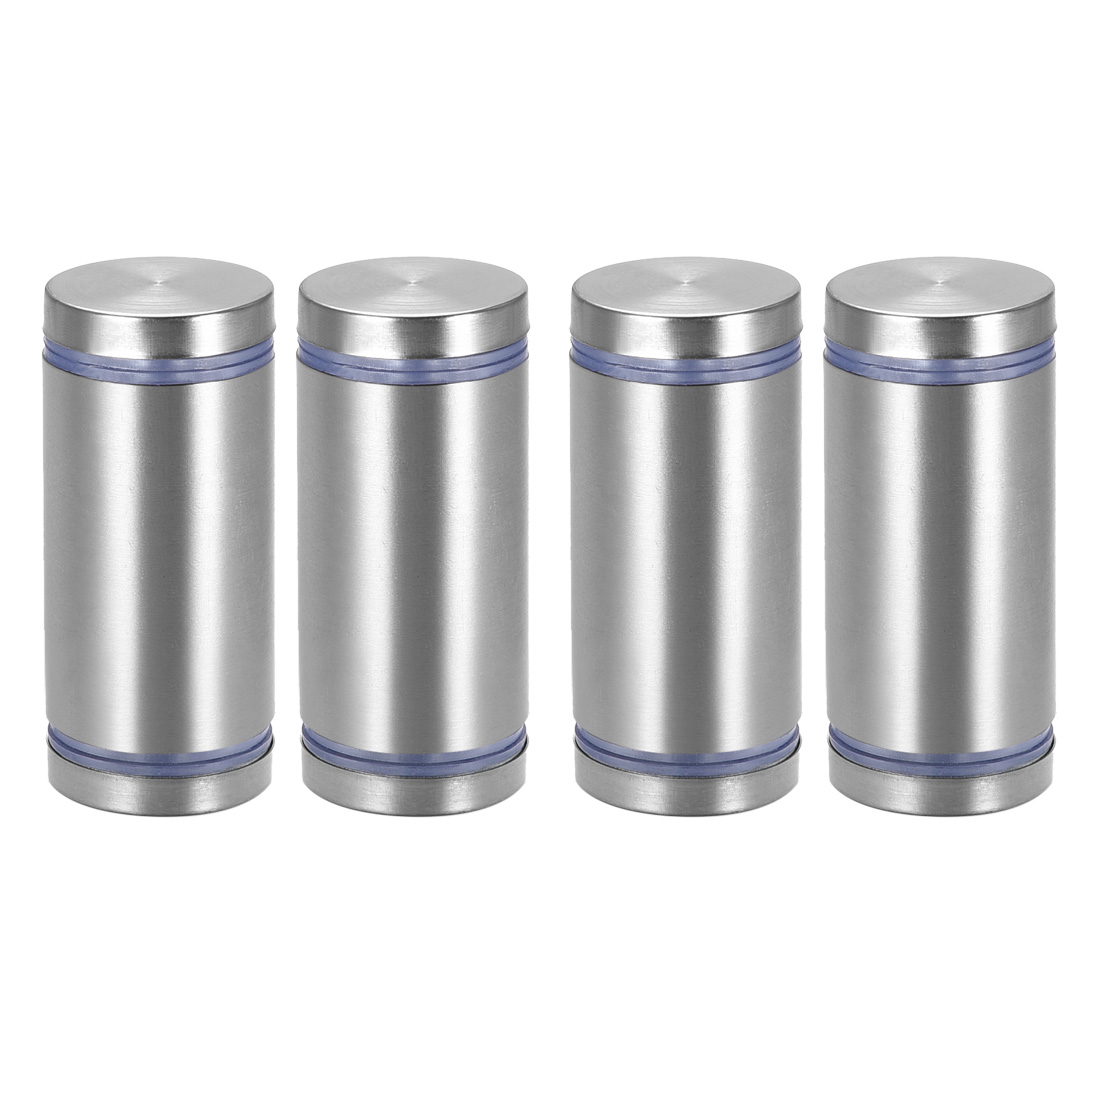 Glass Standoff Double Head Stainless Steel Standoff Holder 25mm x 55mm 4 Pcs